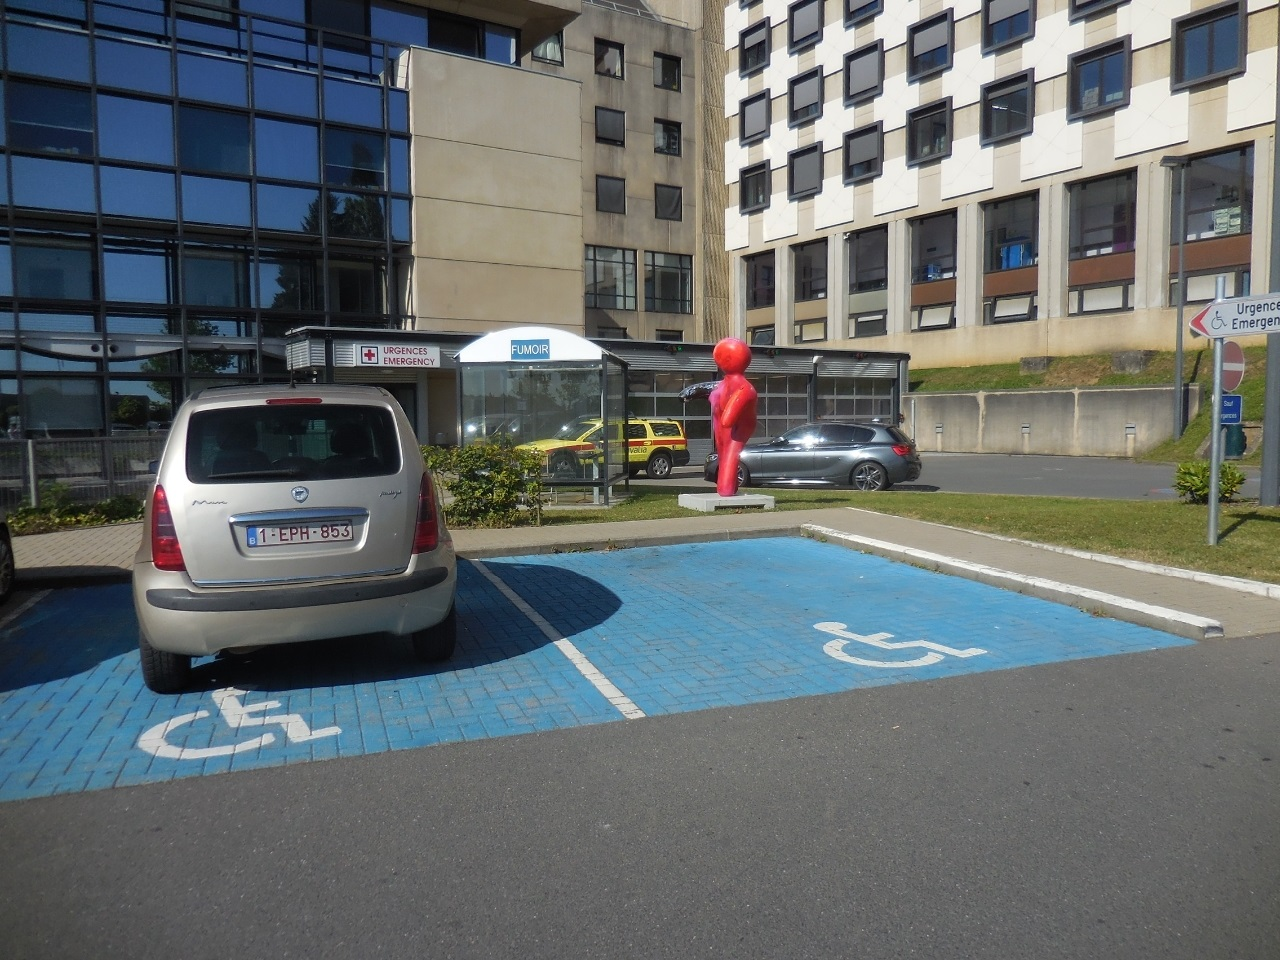 Les emplacements - www.secumobilite.be